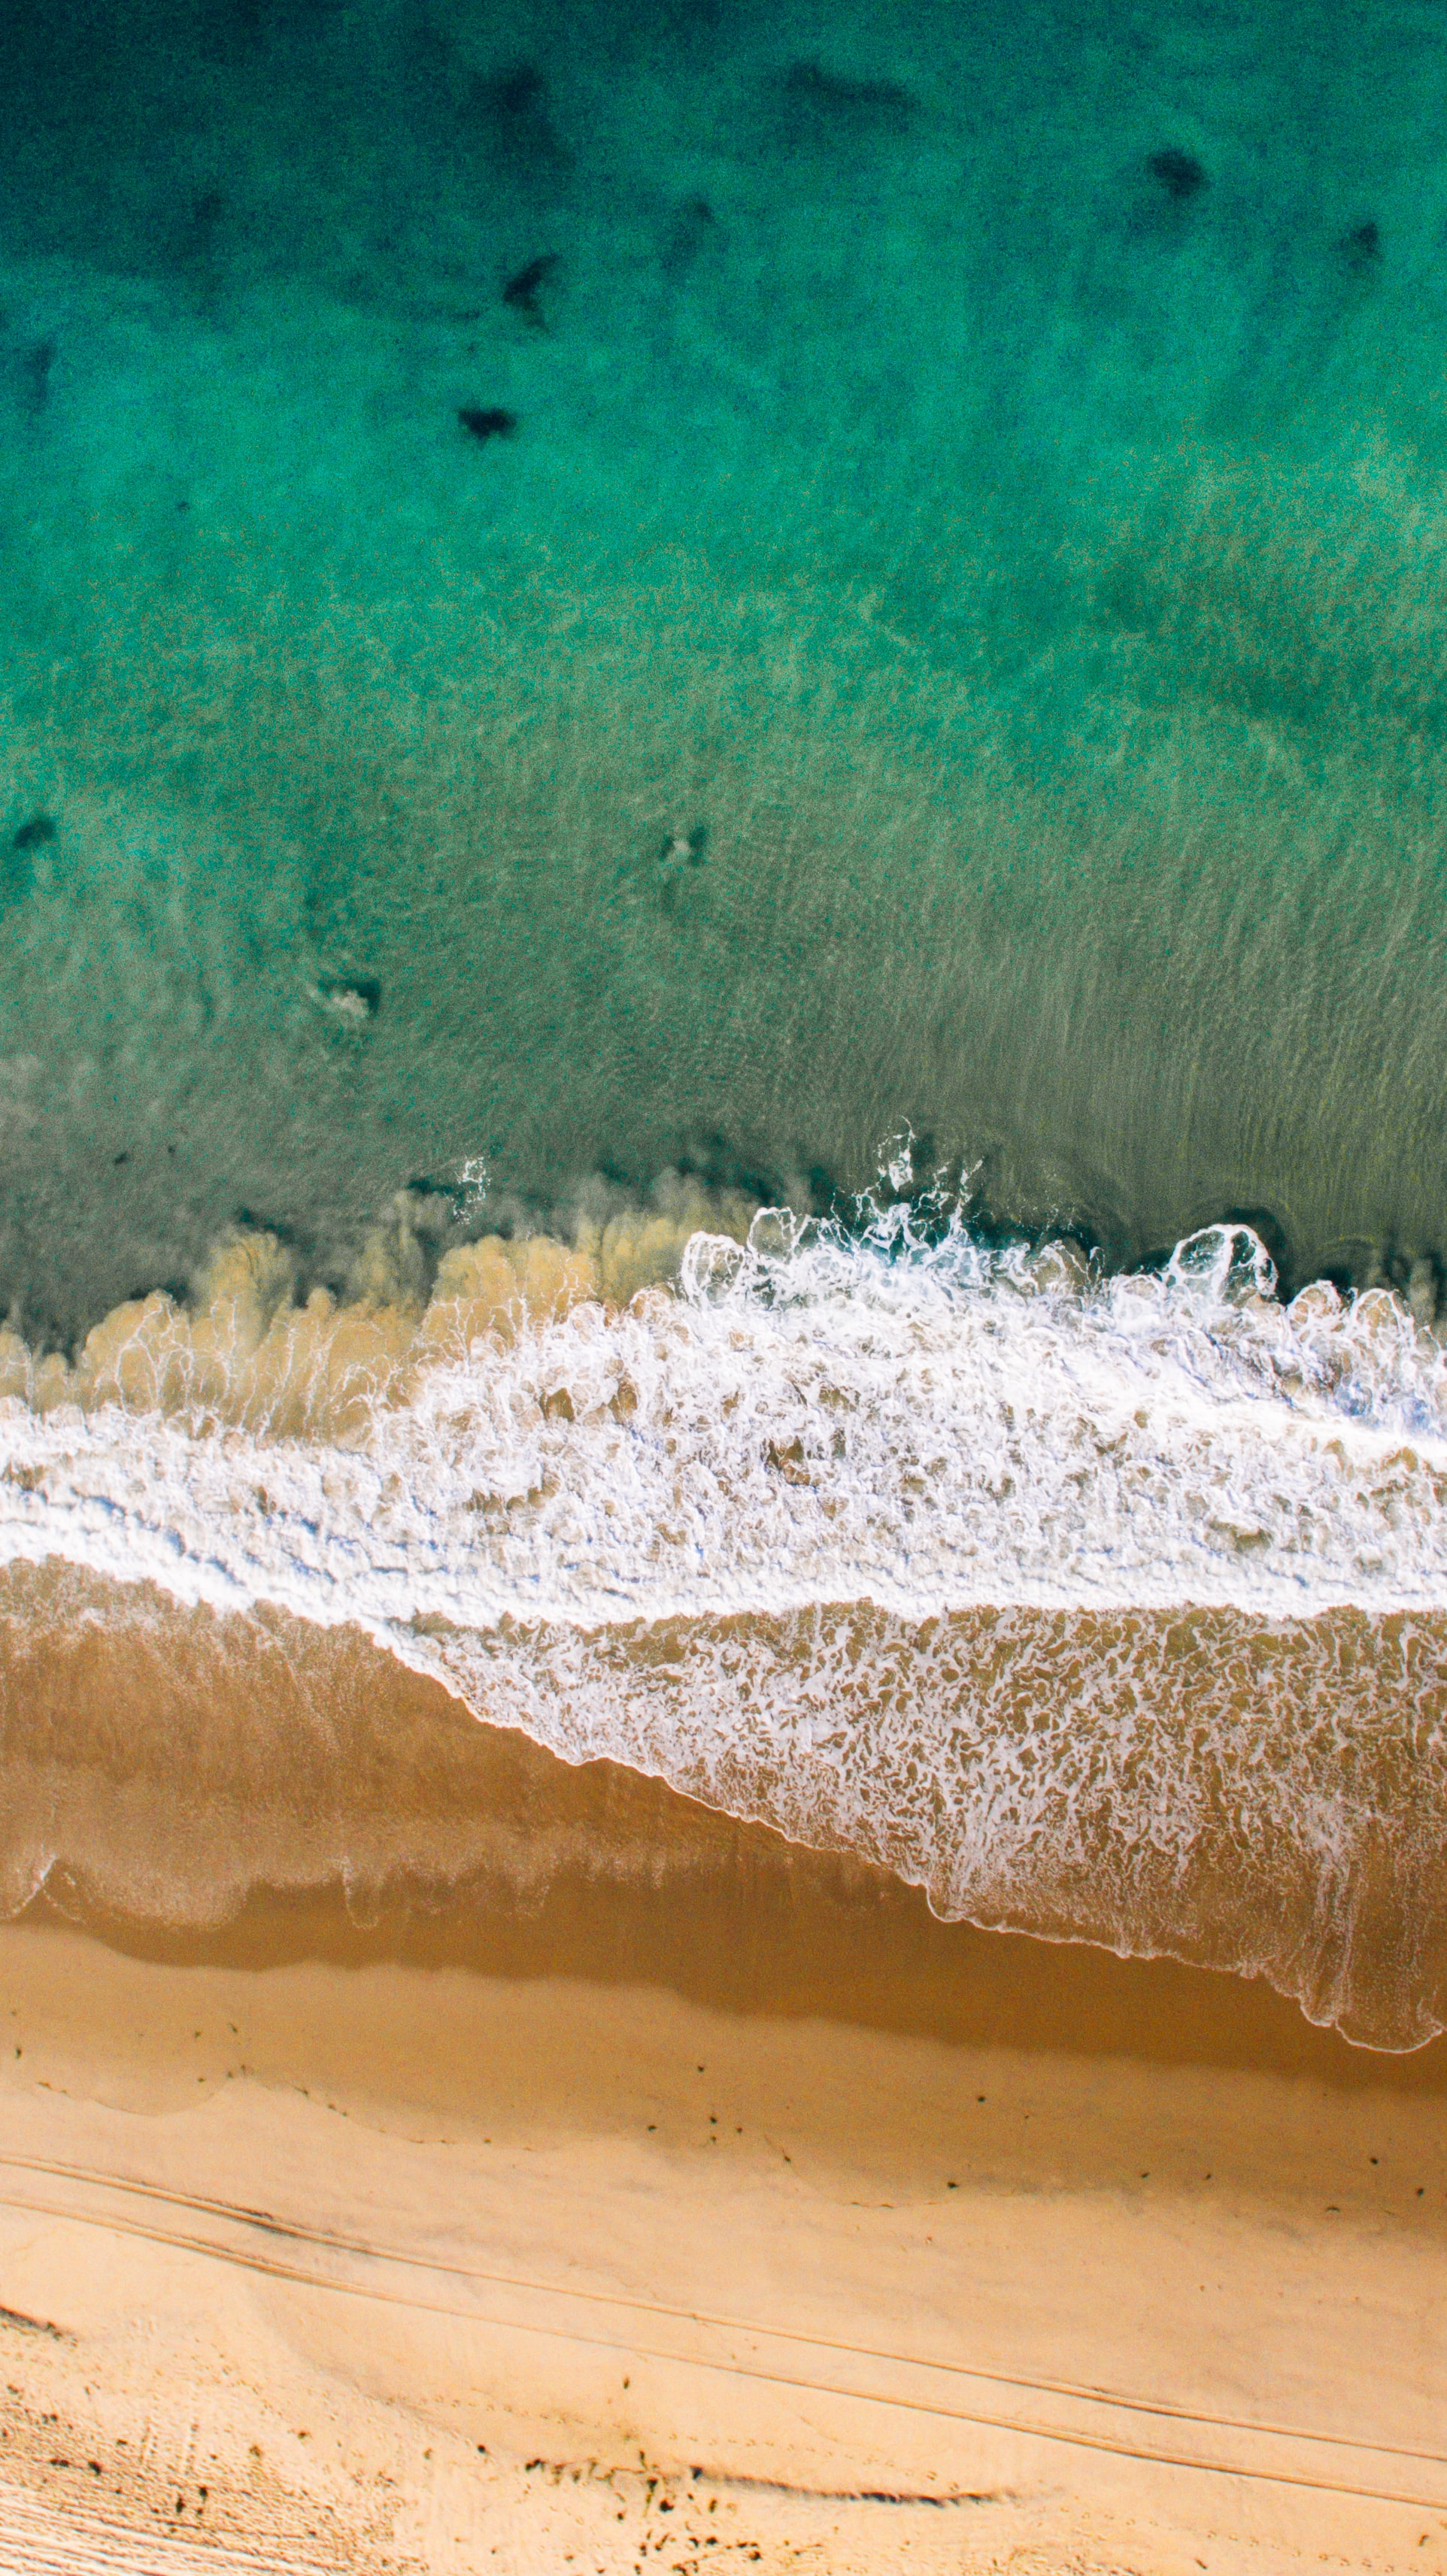 Drone view of the waves crashing on the sand beach shore